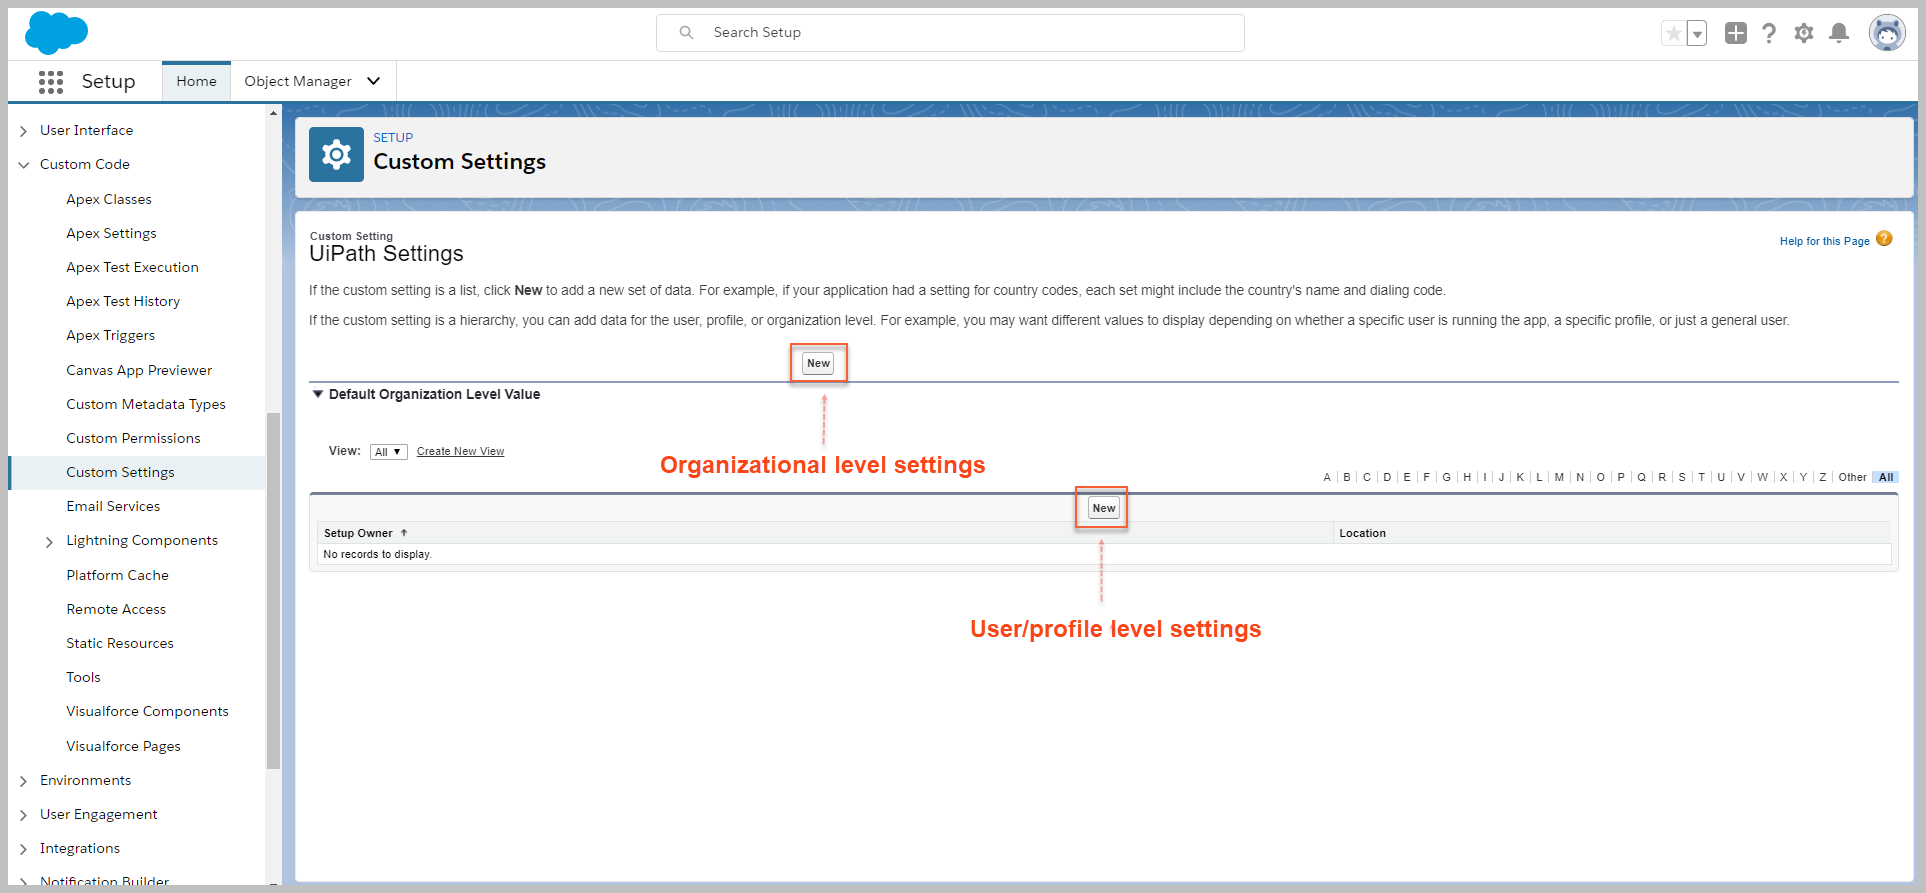 Configure Orchestrator Notifications step 2 differences